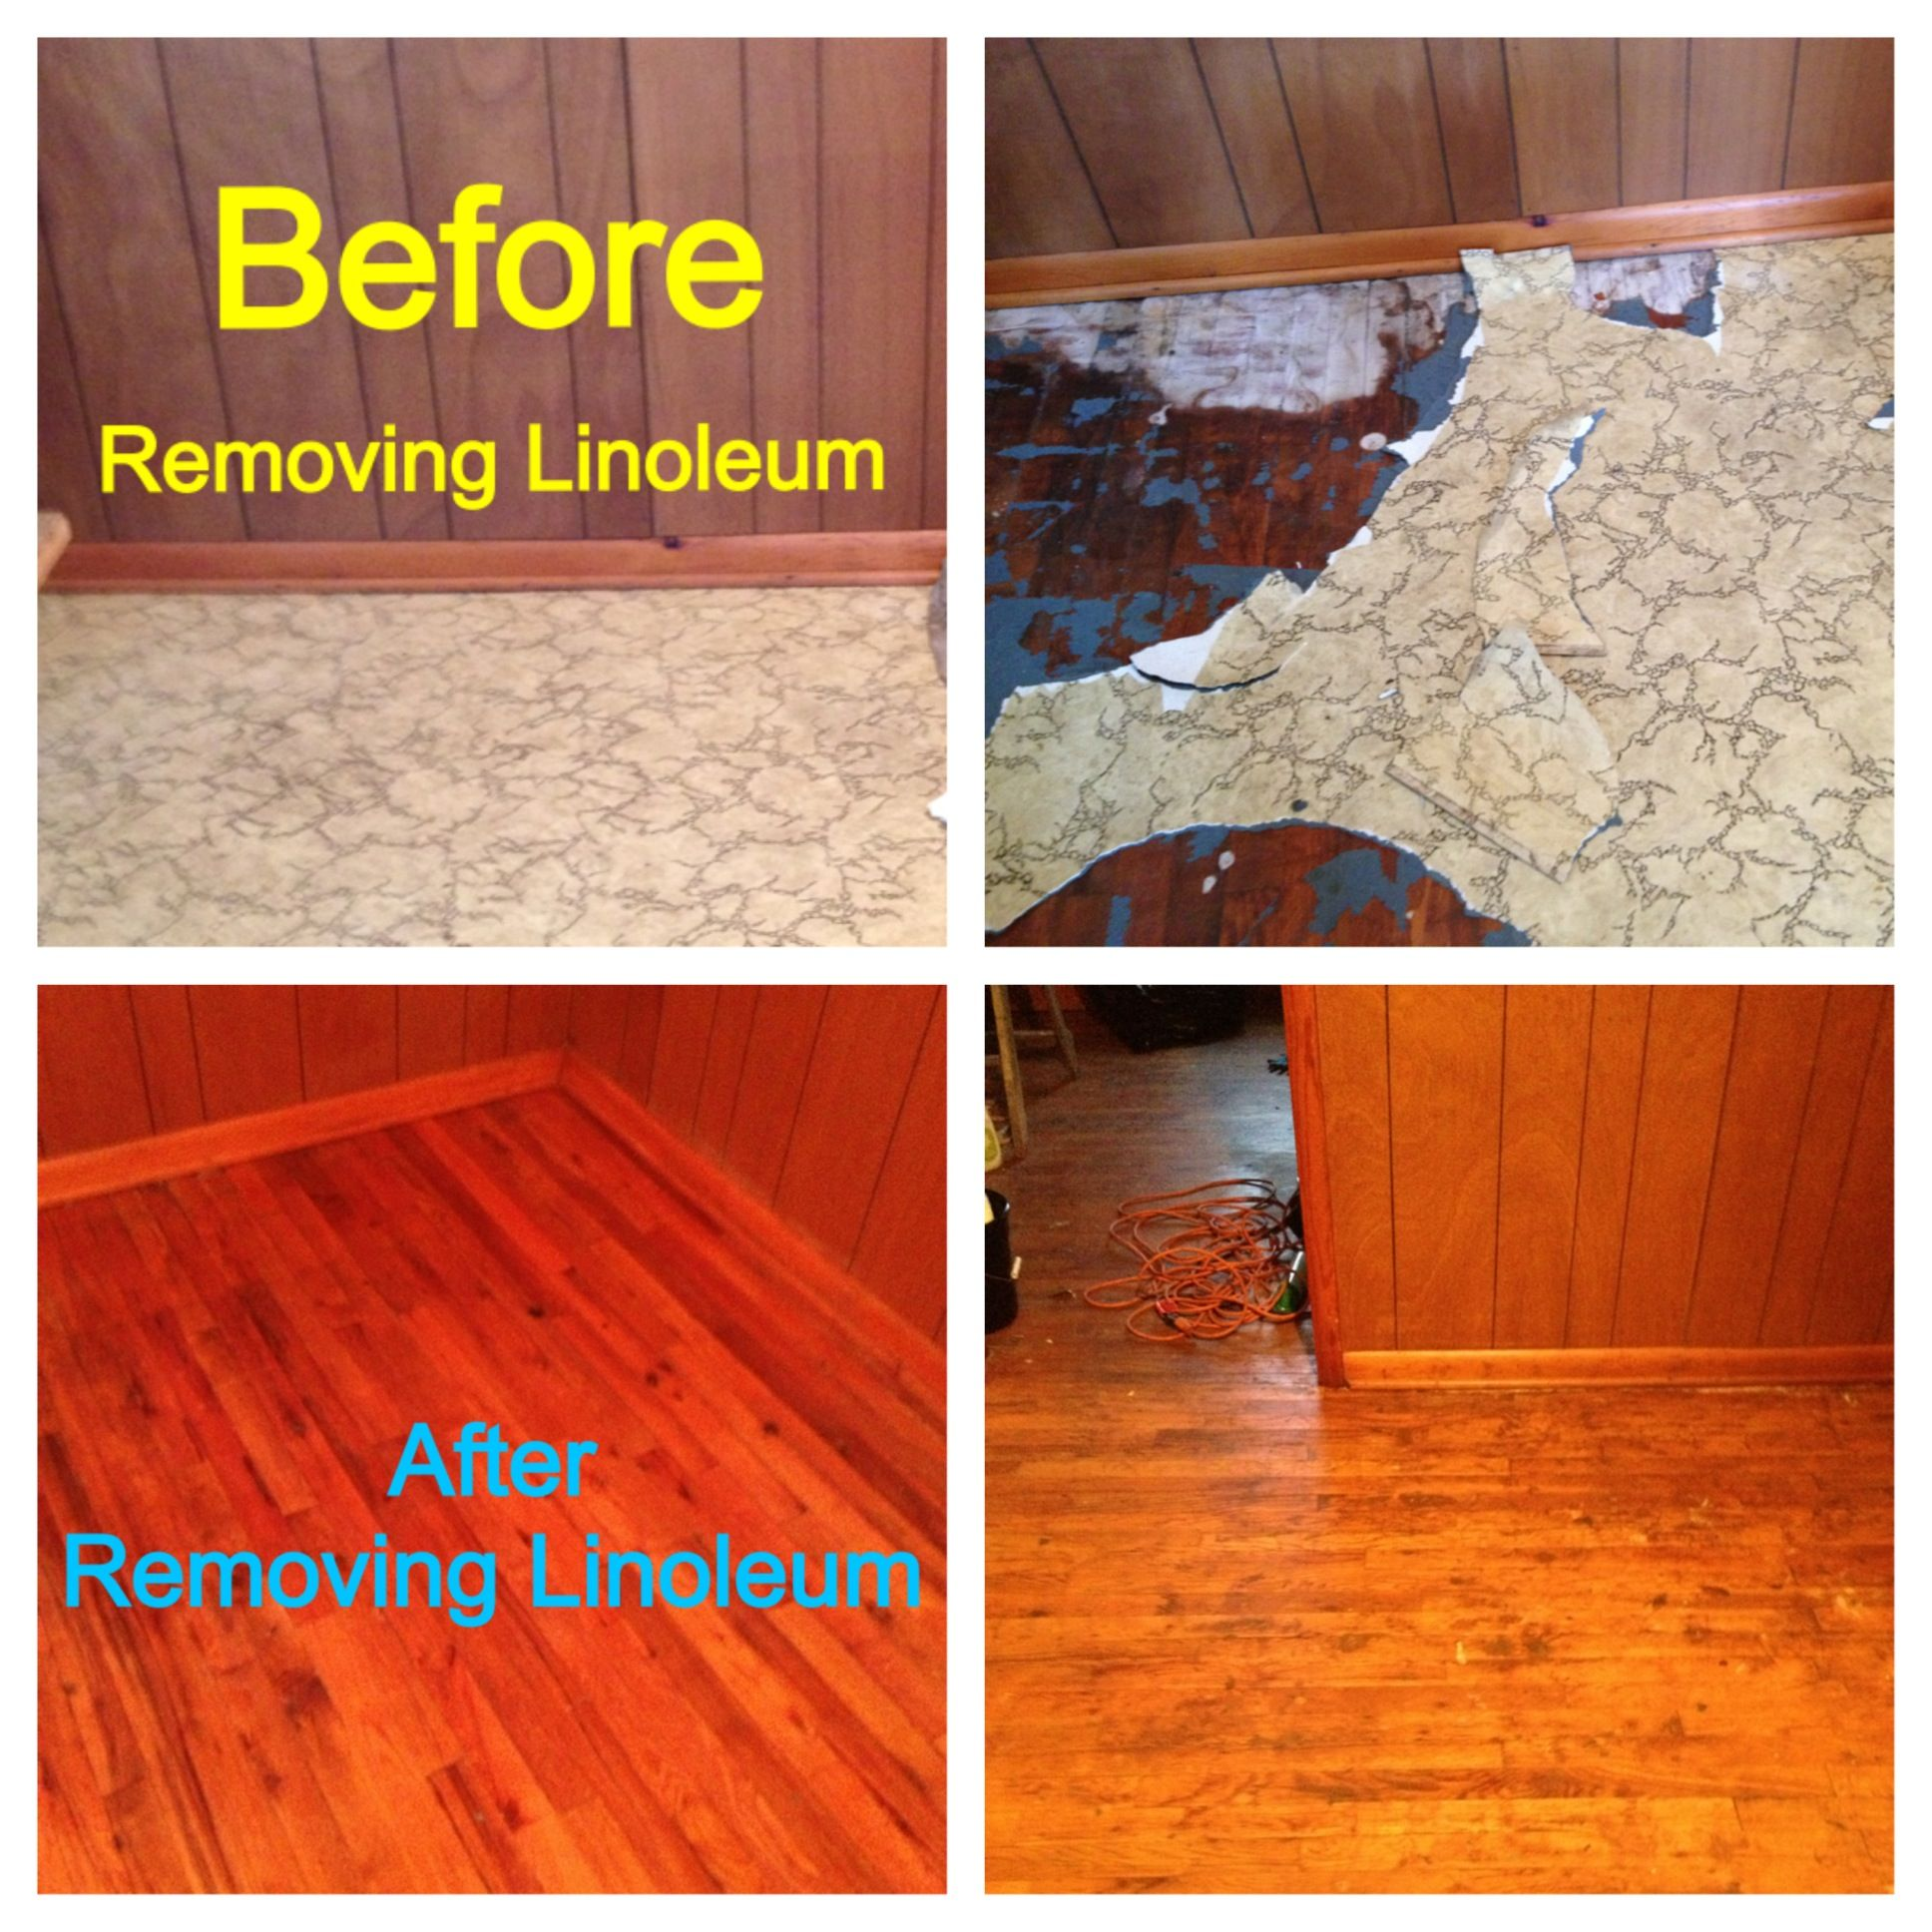 Remove Linoleum From Hardwoods Without Sanding Or